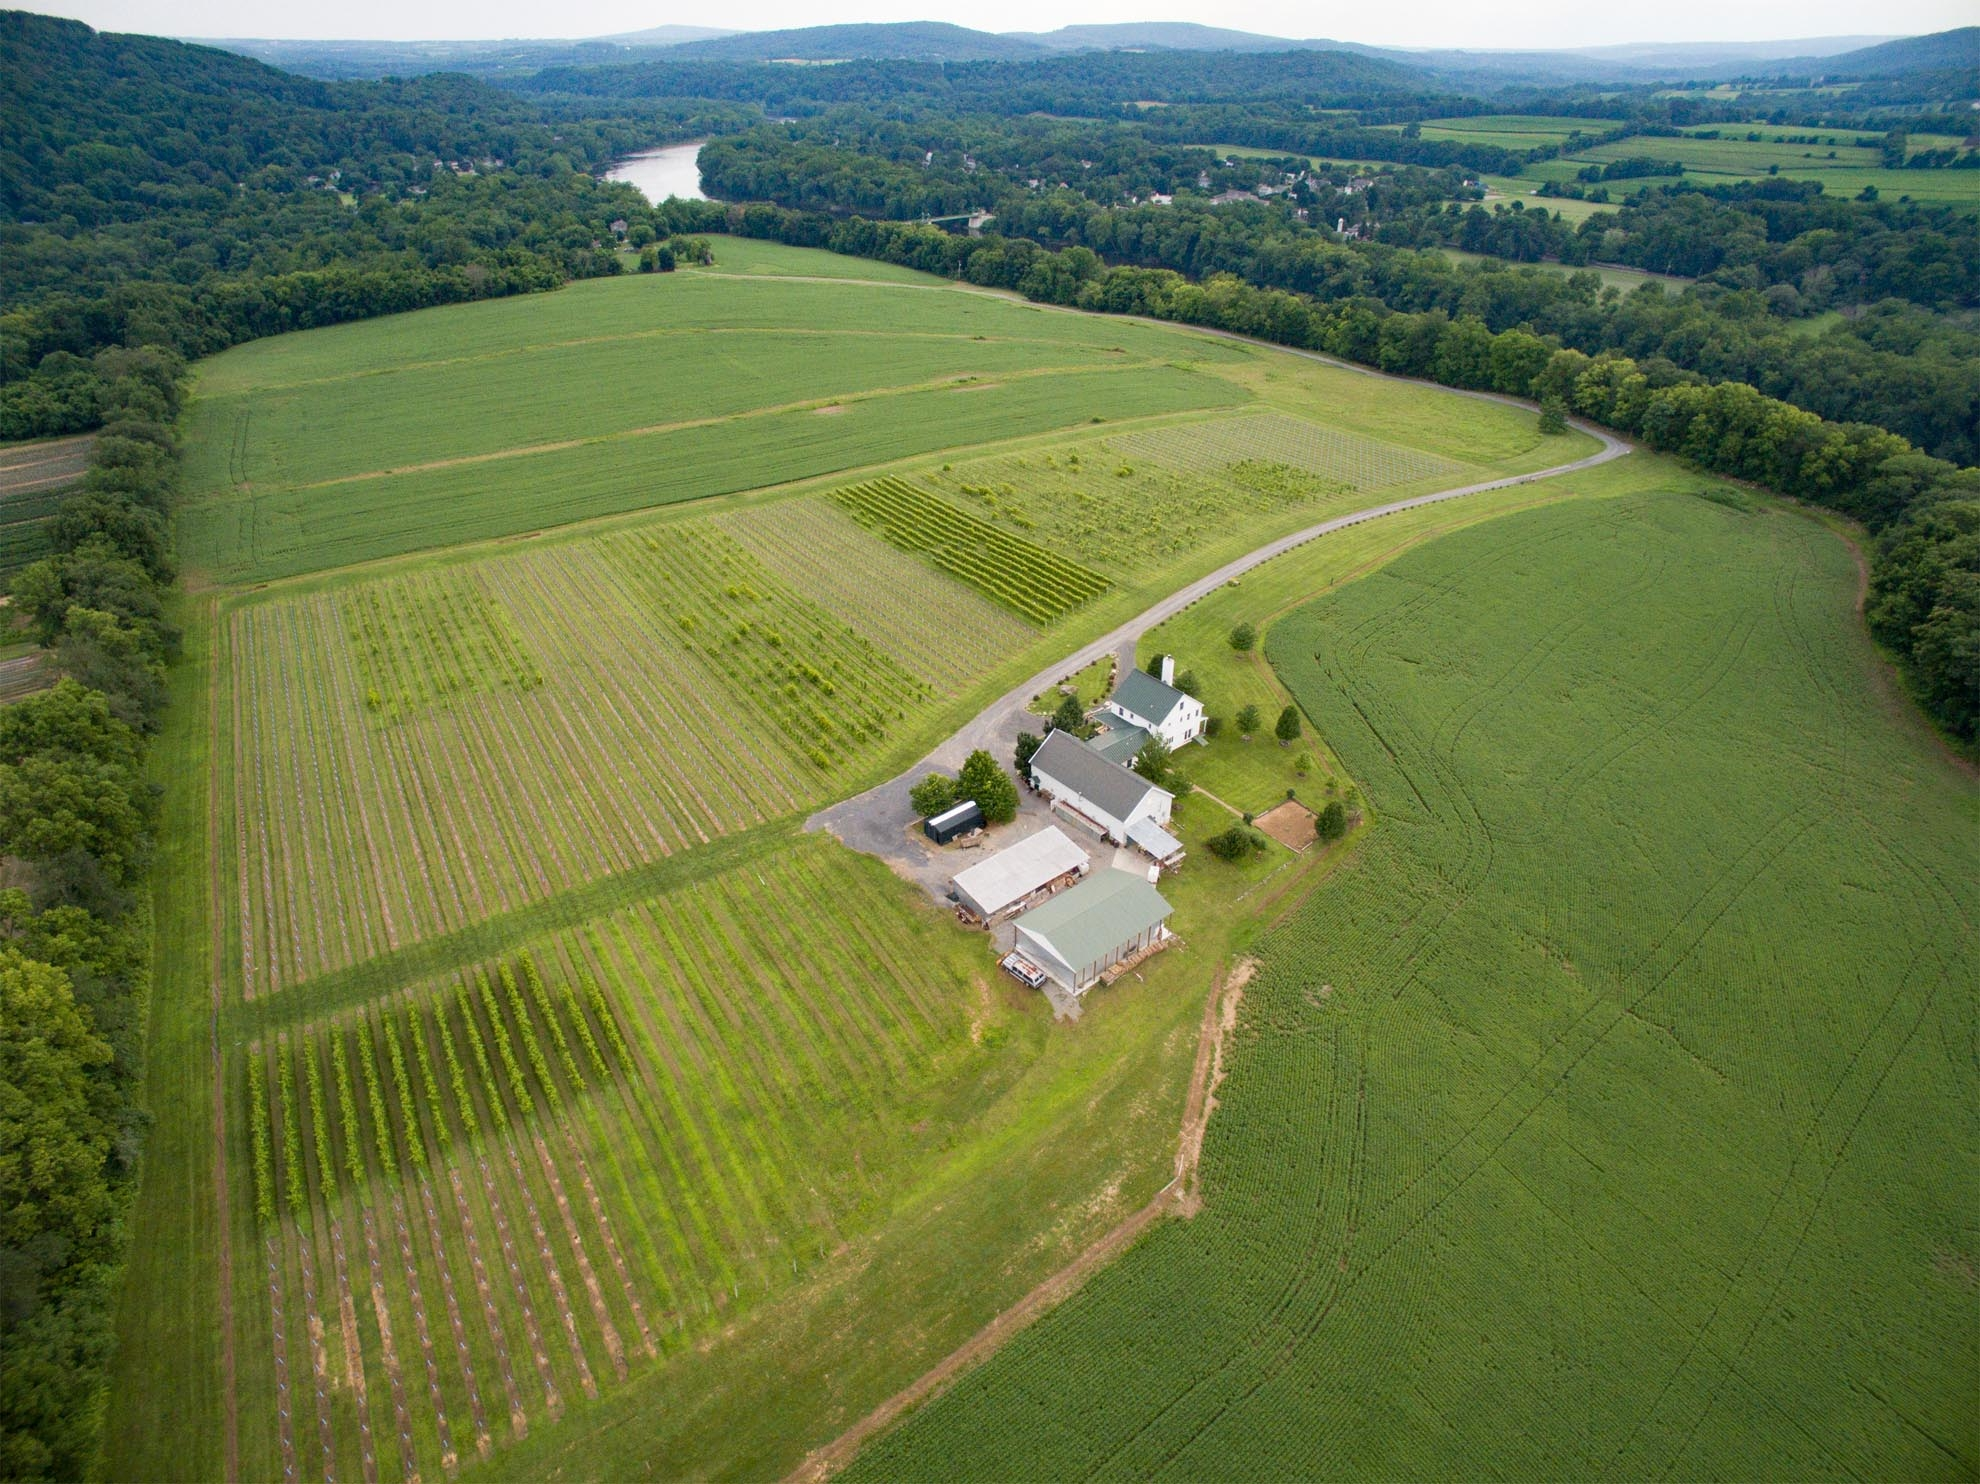 Drone Photograph of Vineyard in New Jersey